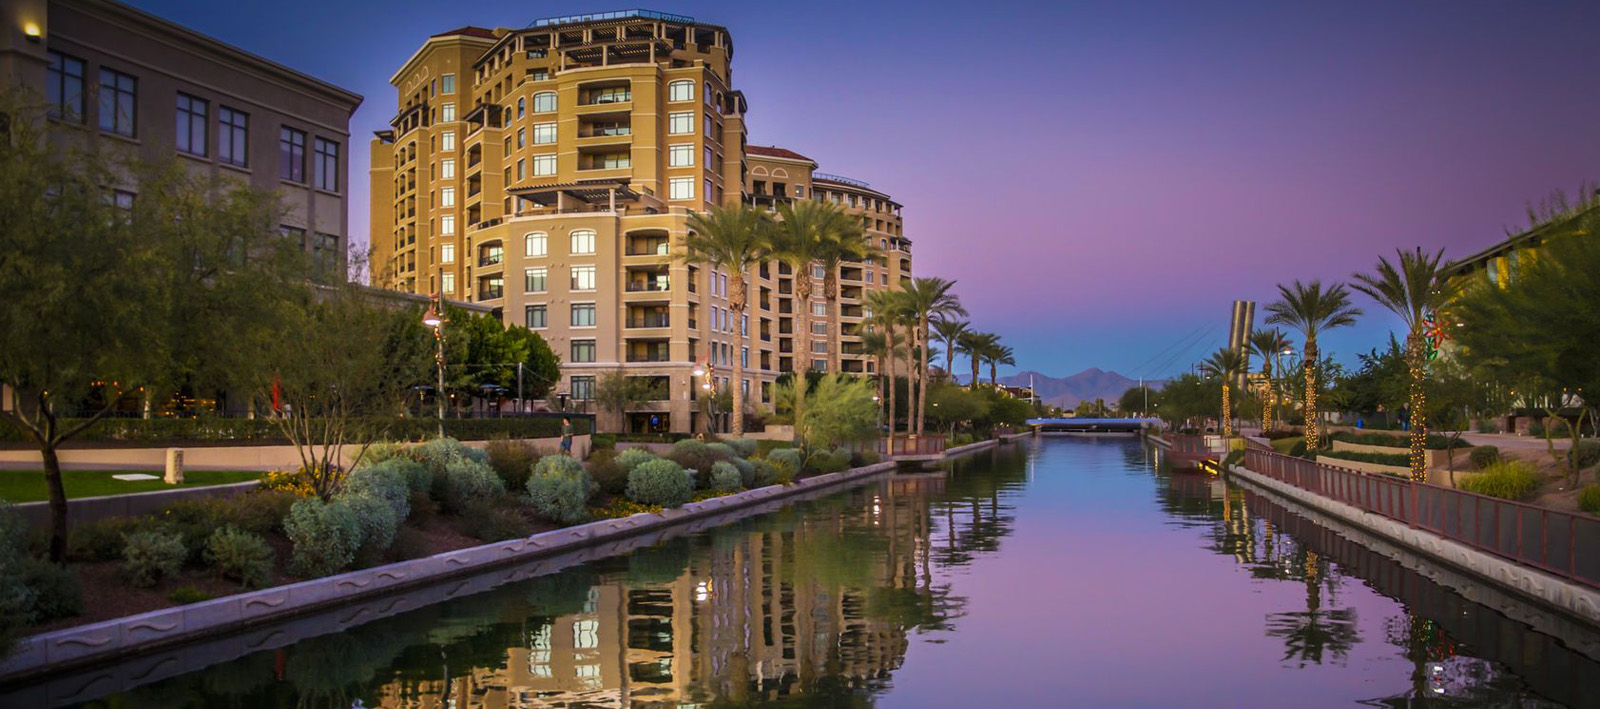 Condos for sale in Scottsdale AZ Water Front District